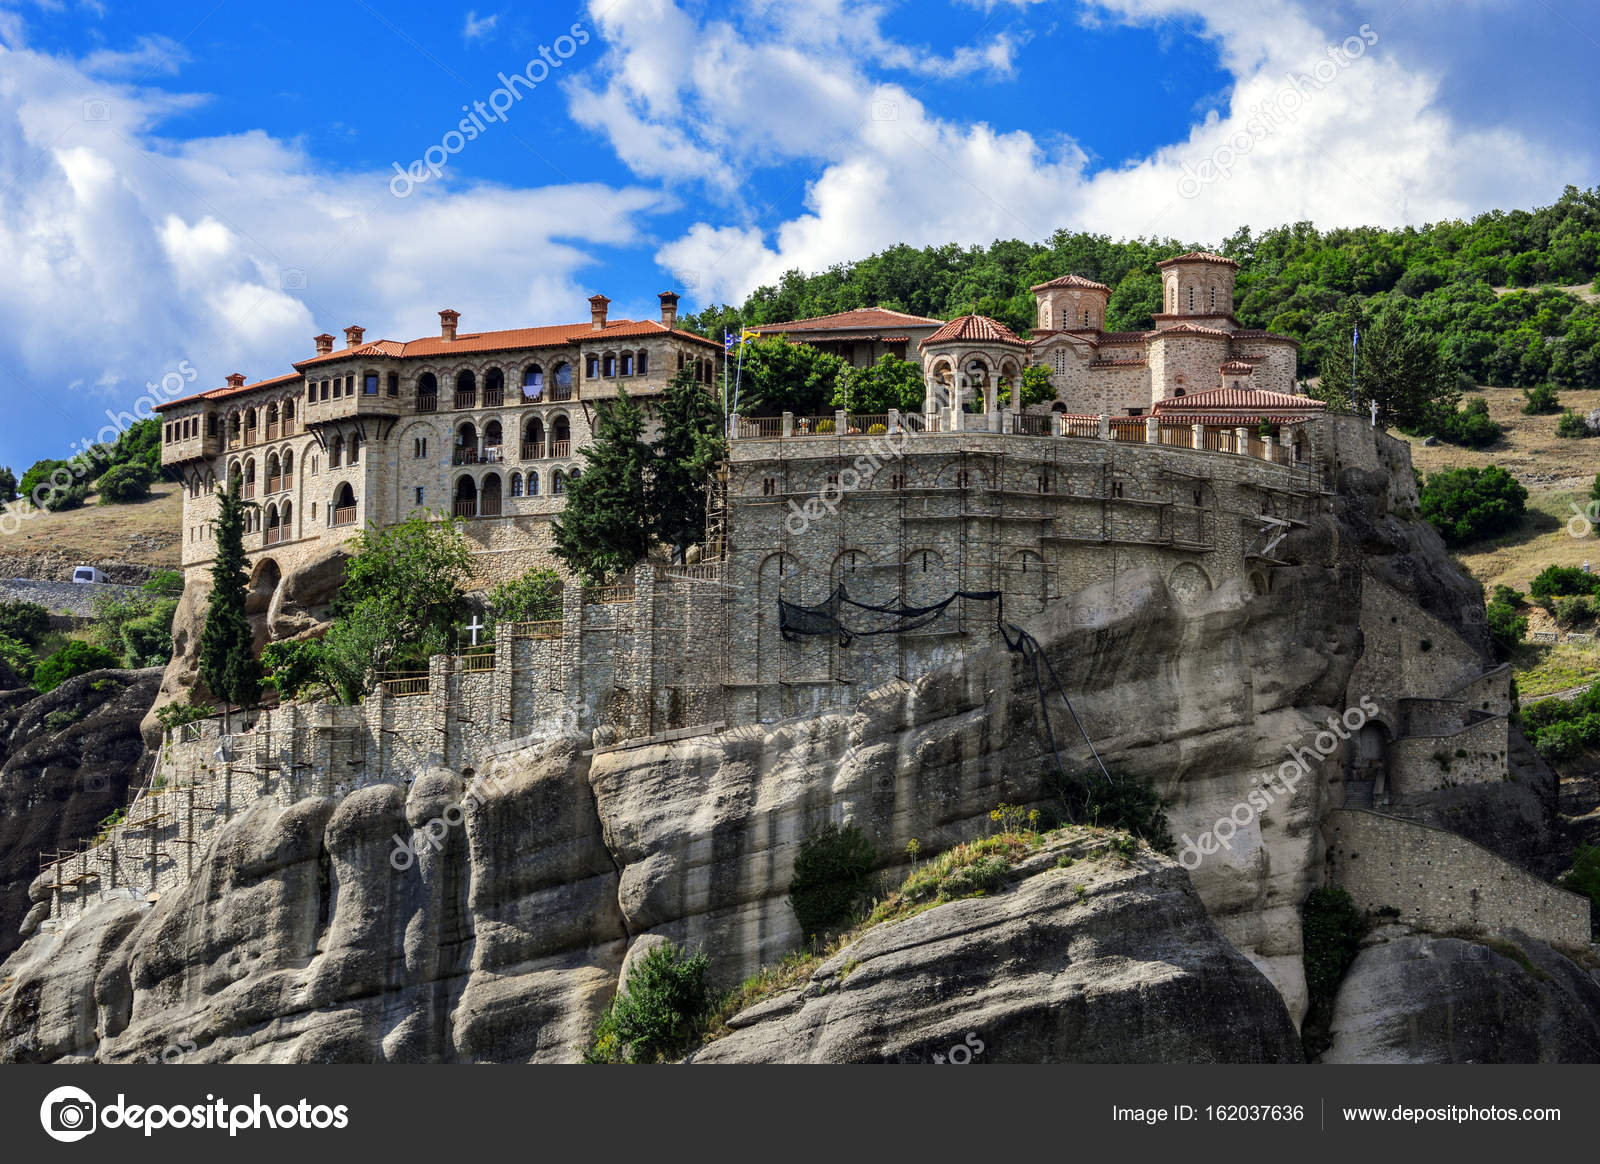 depositphotos_162037636-stock-photo-monastery-varlaam-on-a-rock.jpg